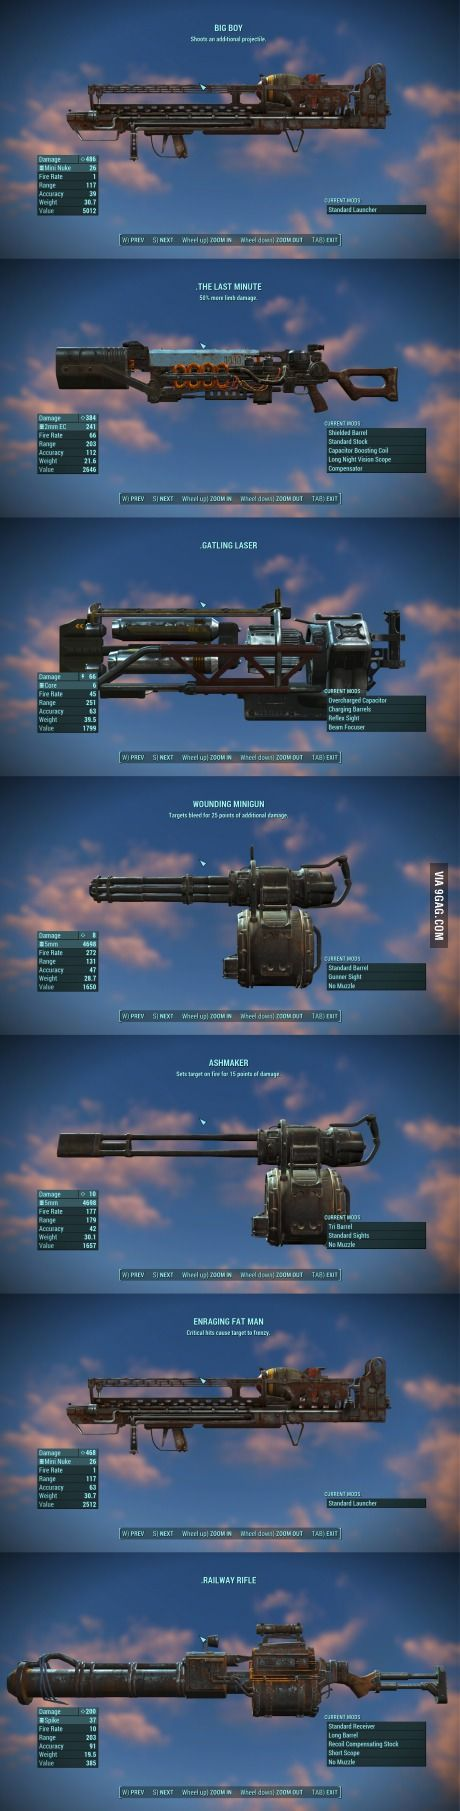 Best Heavy Weapons so far (fallout 4)/// the last one! Choo-Cho